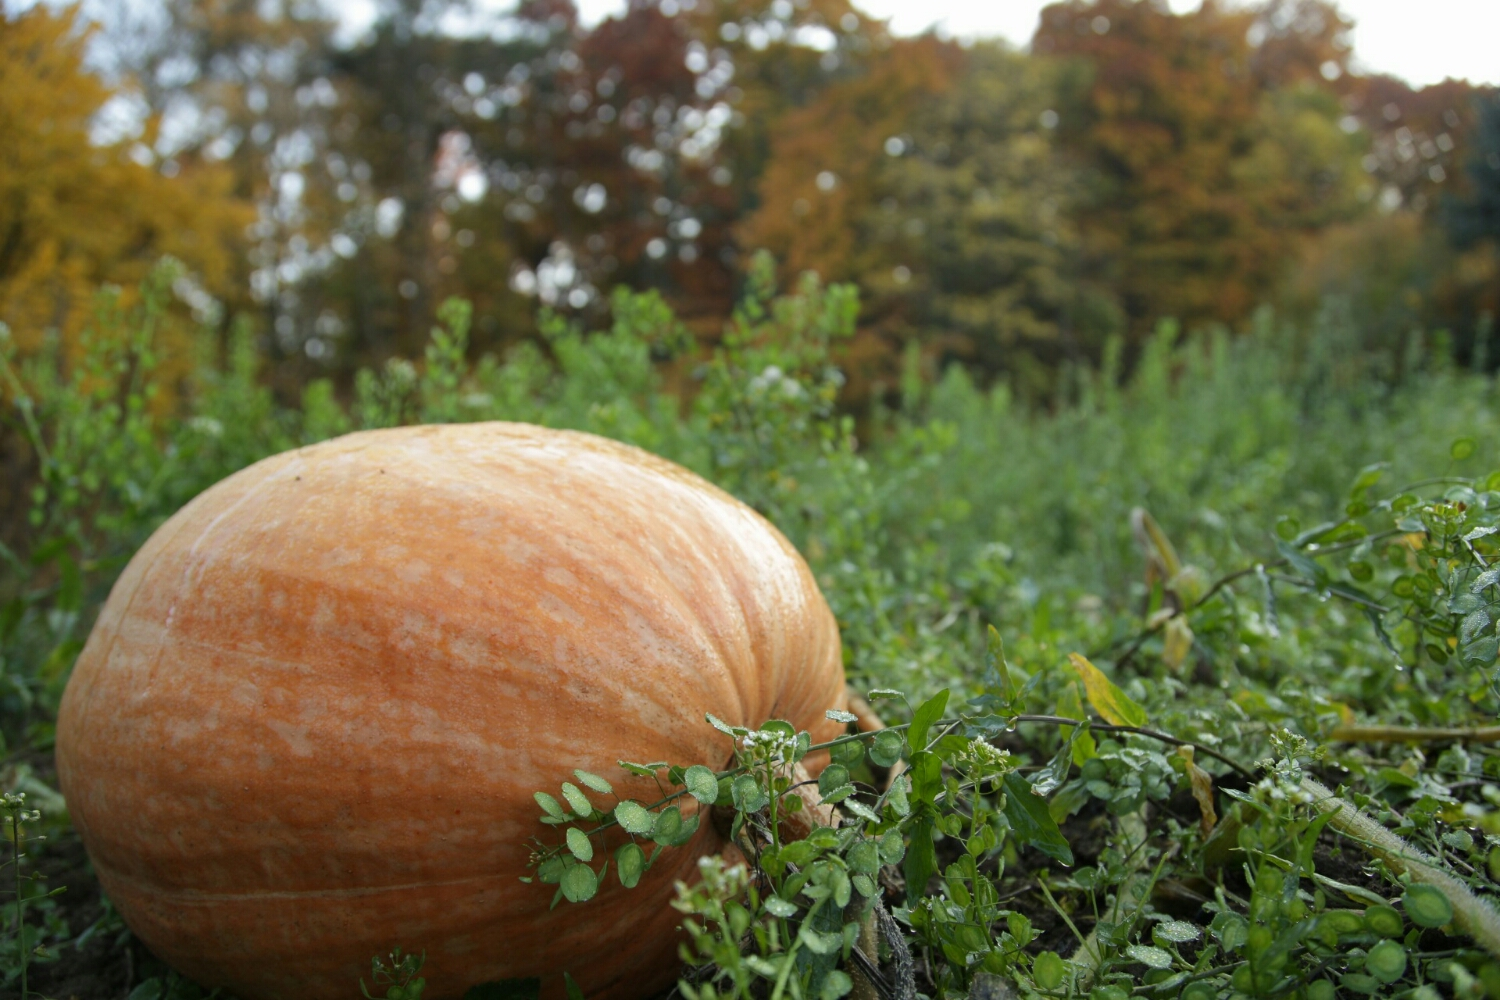 it must feel awful to be the only pumpkin that didn't get picked for Halloween.